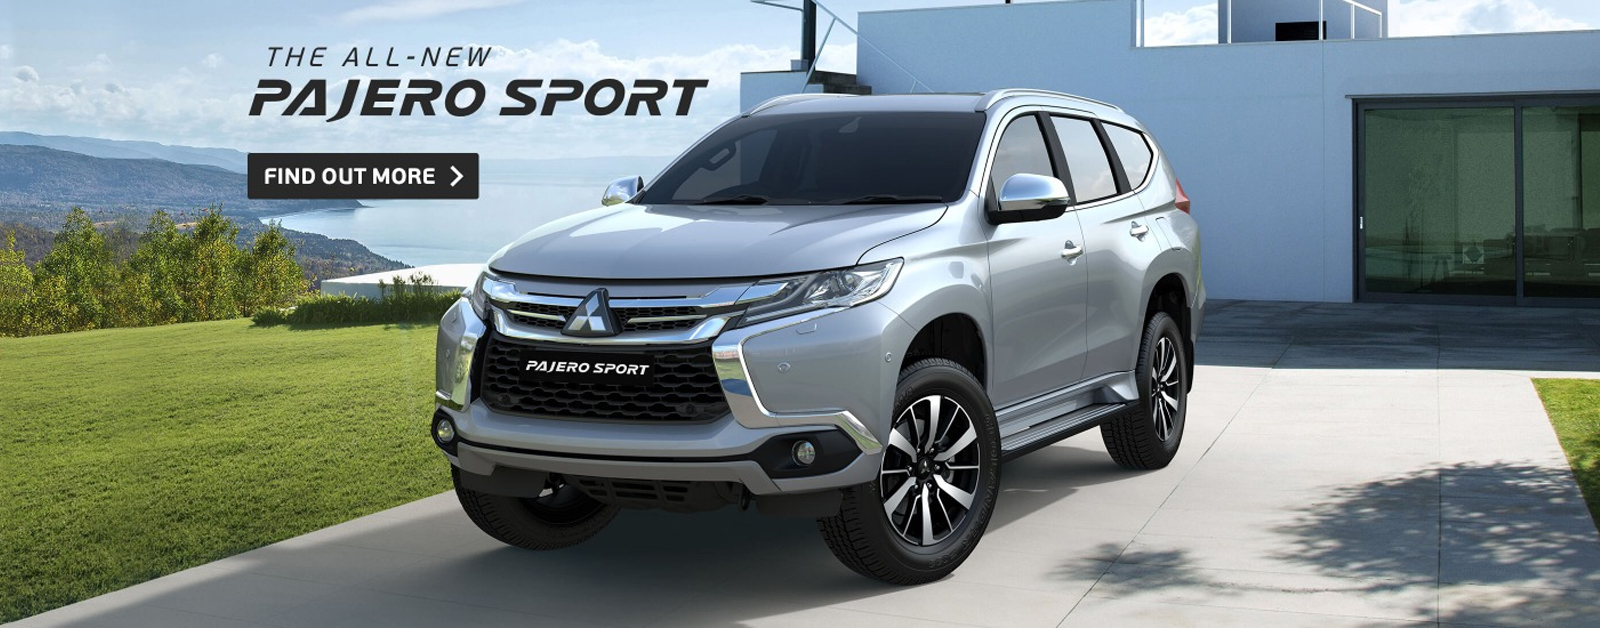 The all-new Pajero Sport 4x4, find out more at Redcliffe Mitsubishi Brisbane today.